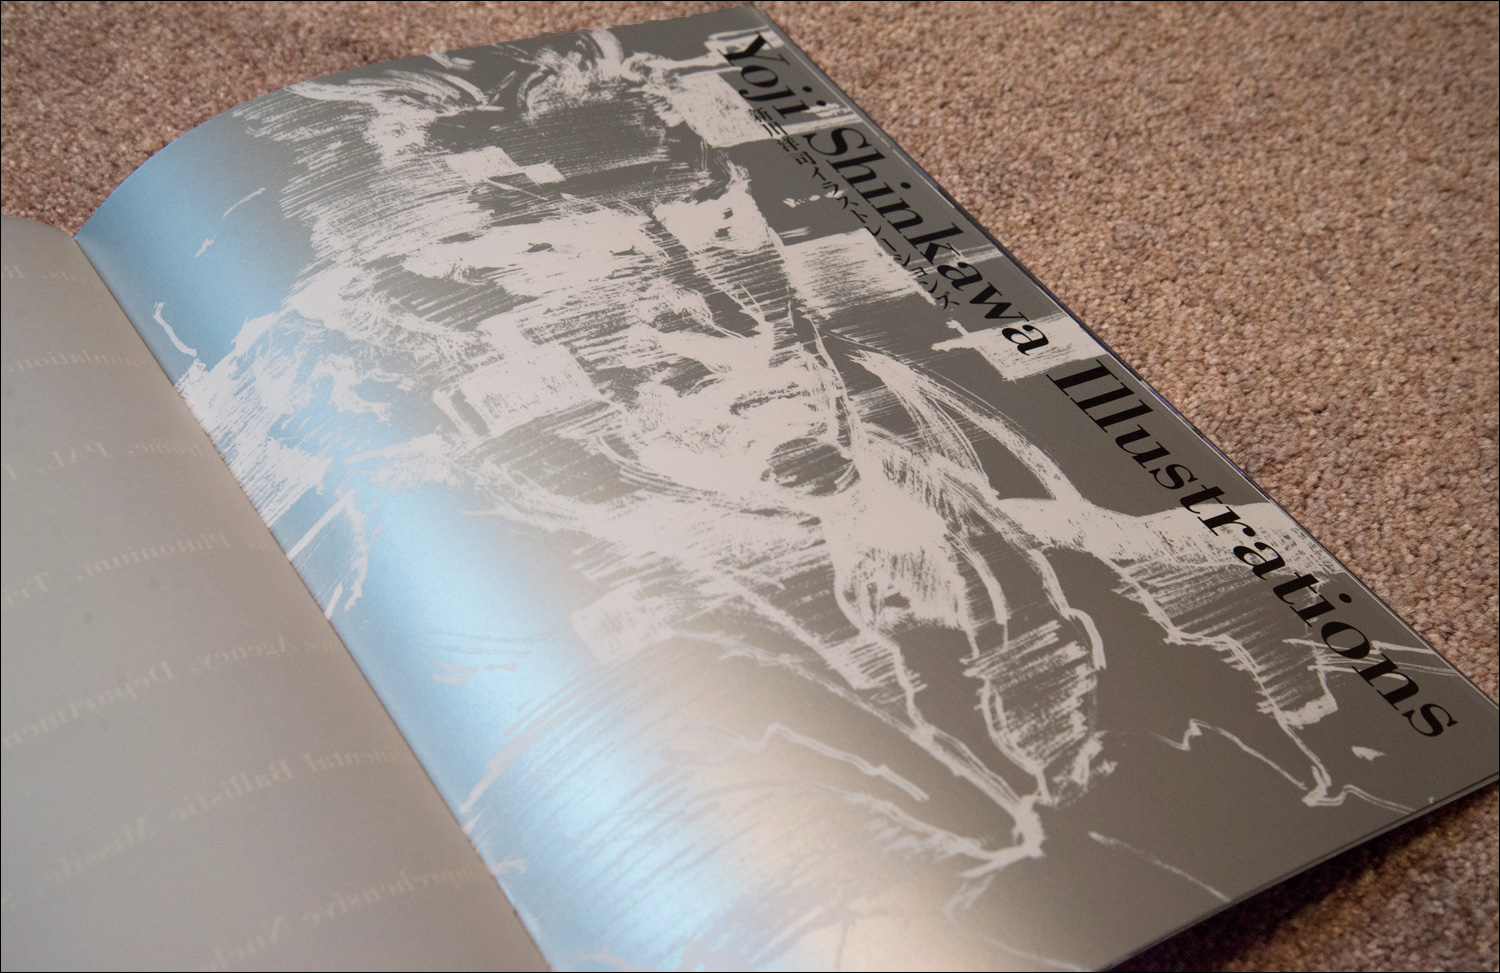 Metal-Gear-Solid-Premium-Package-Classified-Book-Yoji-Shinkawa